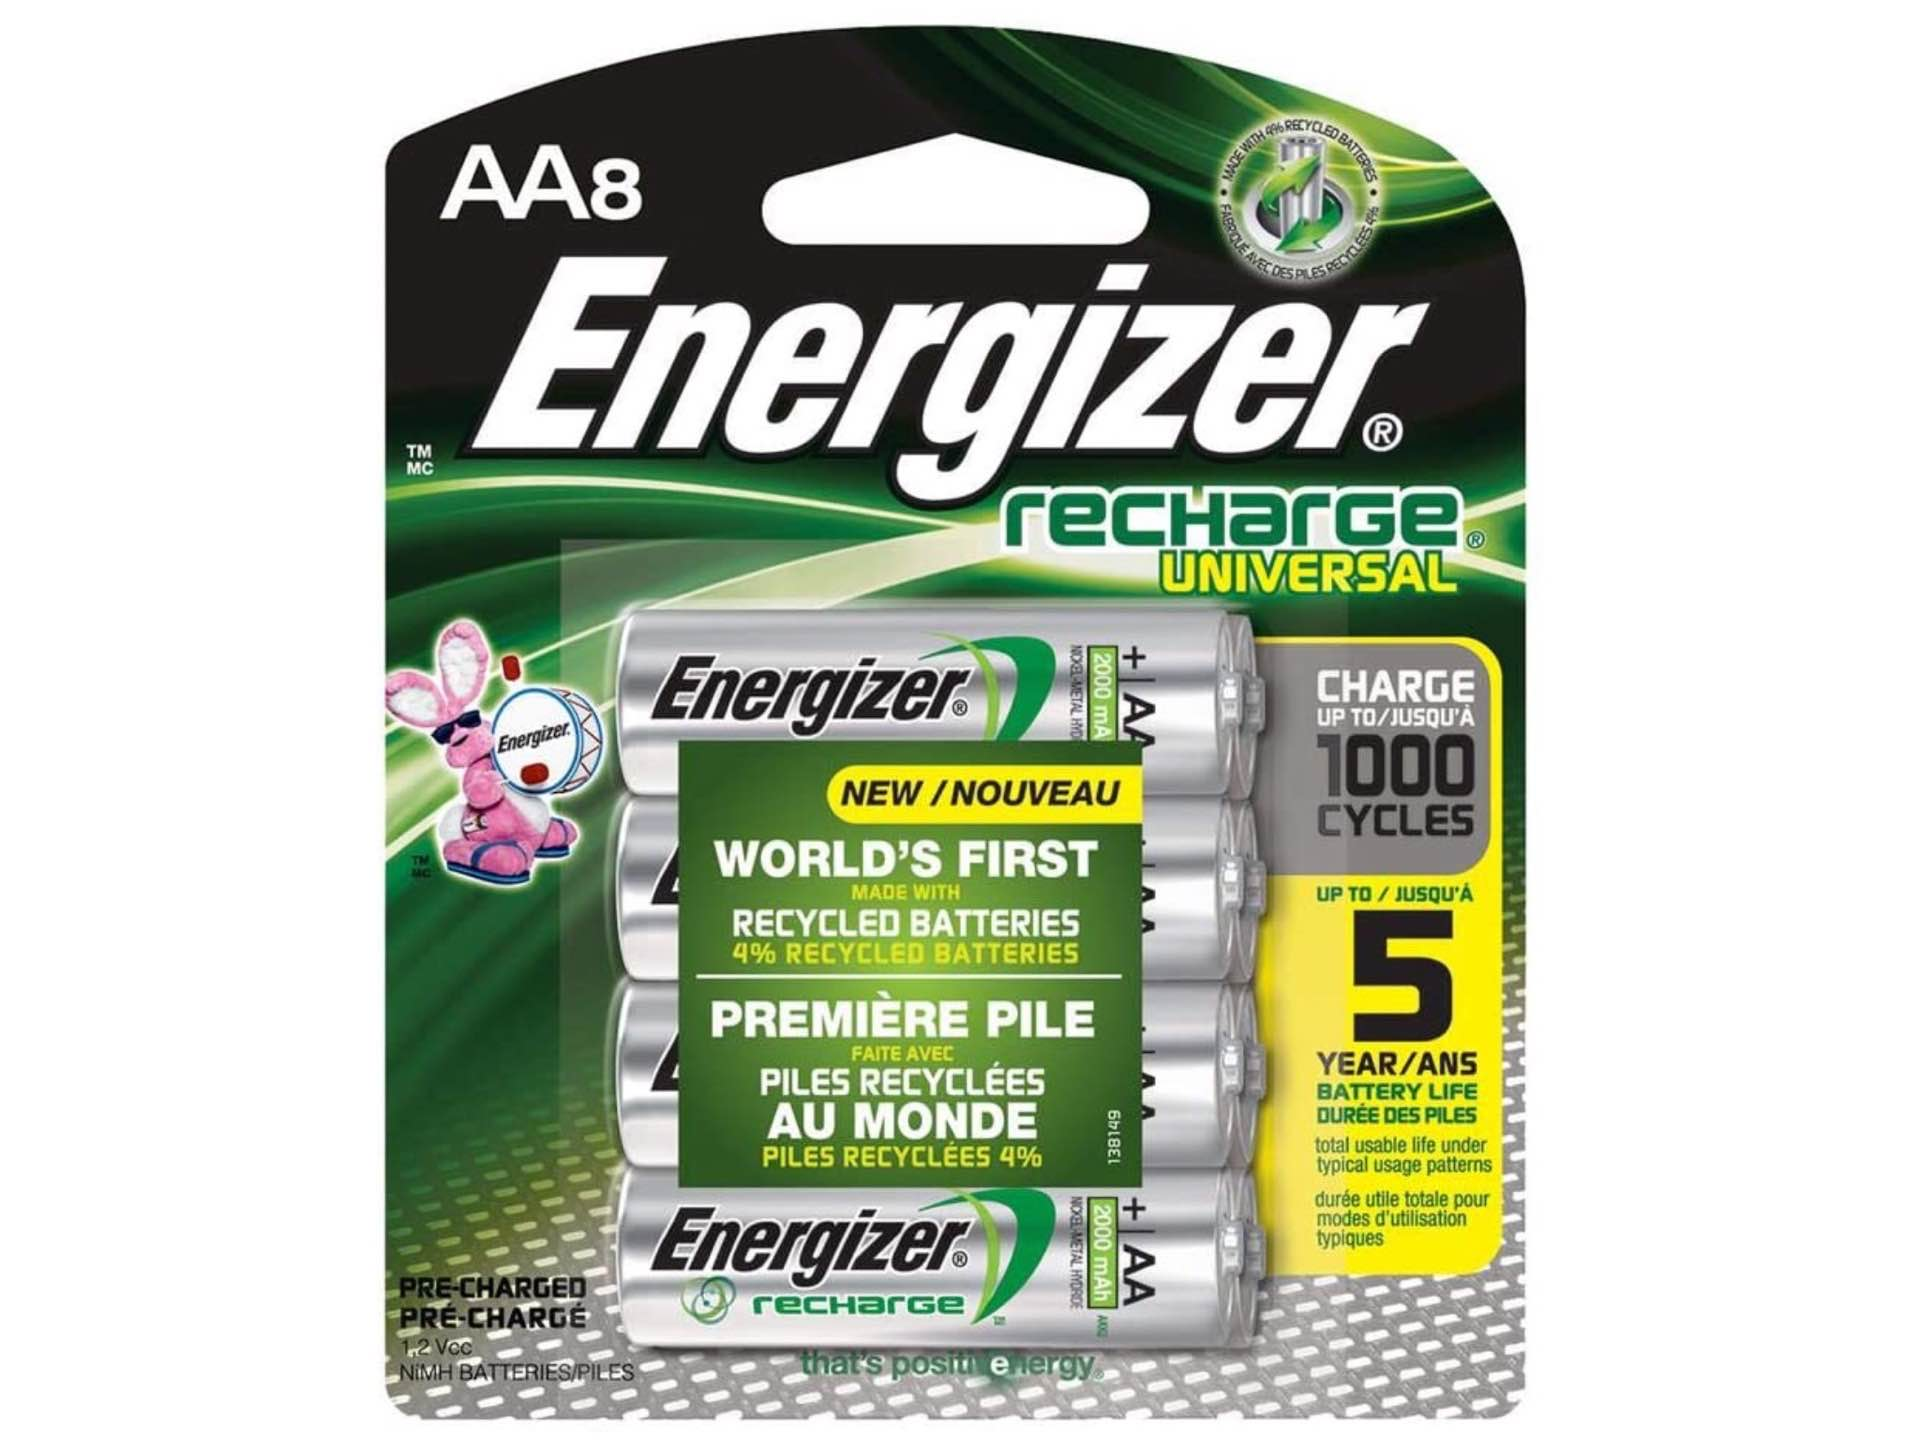 energizer-recharge-universal-rechargeable-batteries